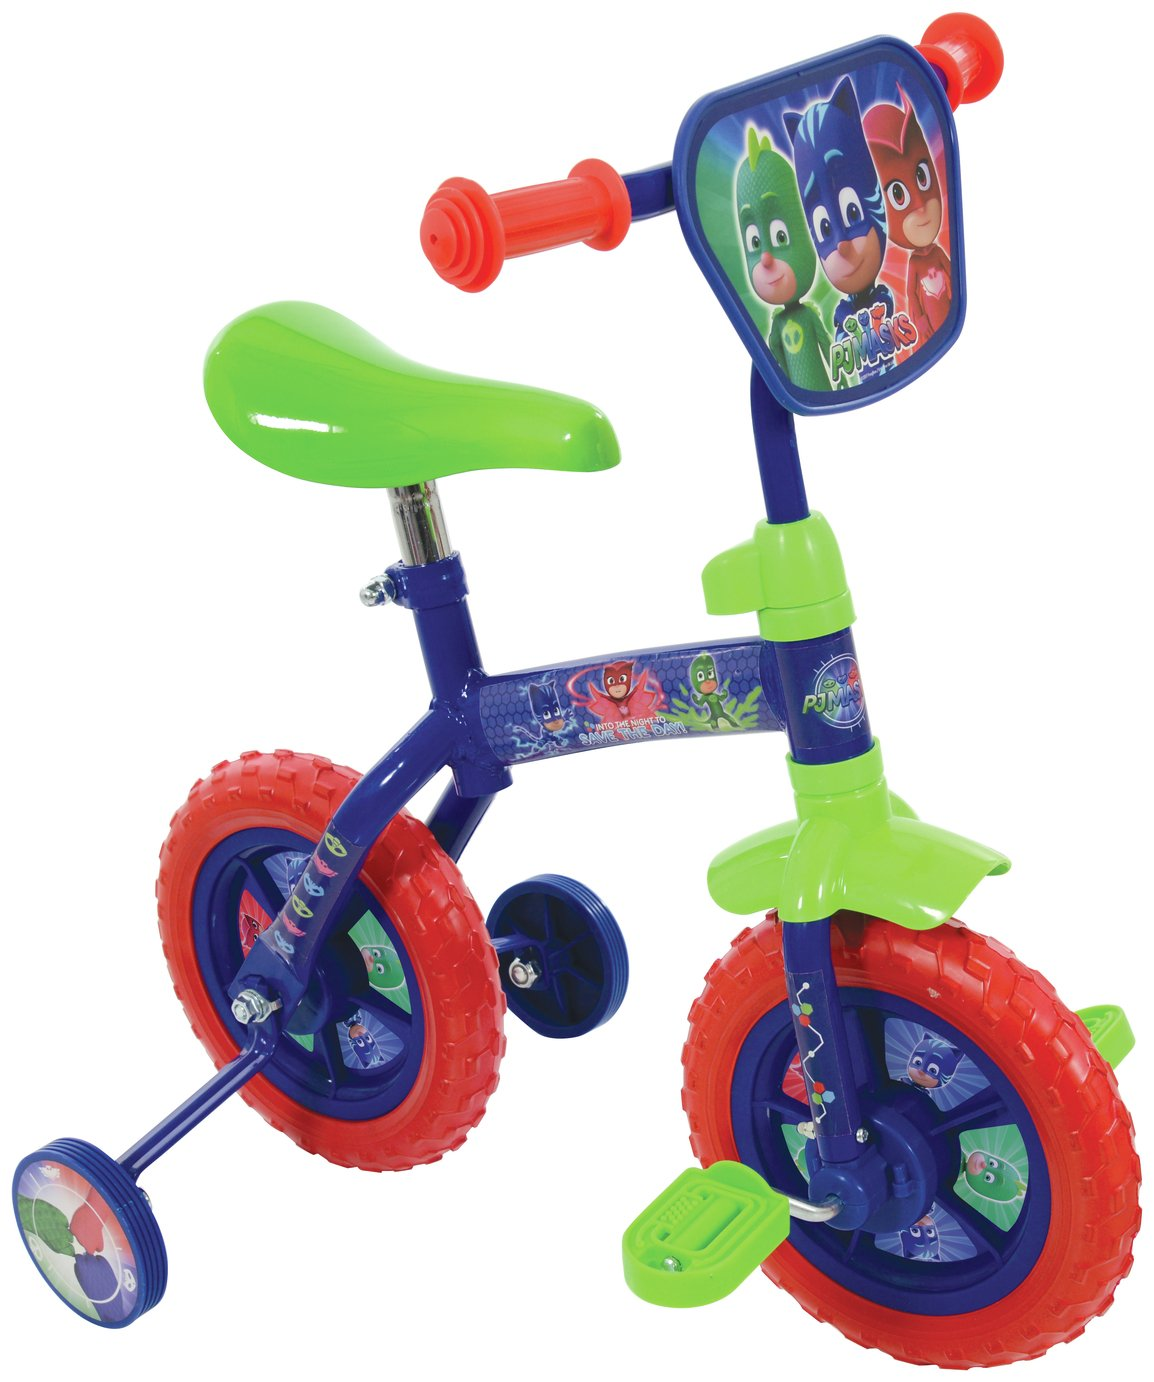 PJ Masks 2 in 1 Kids Training Bike